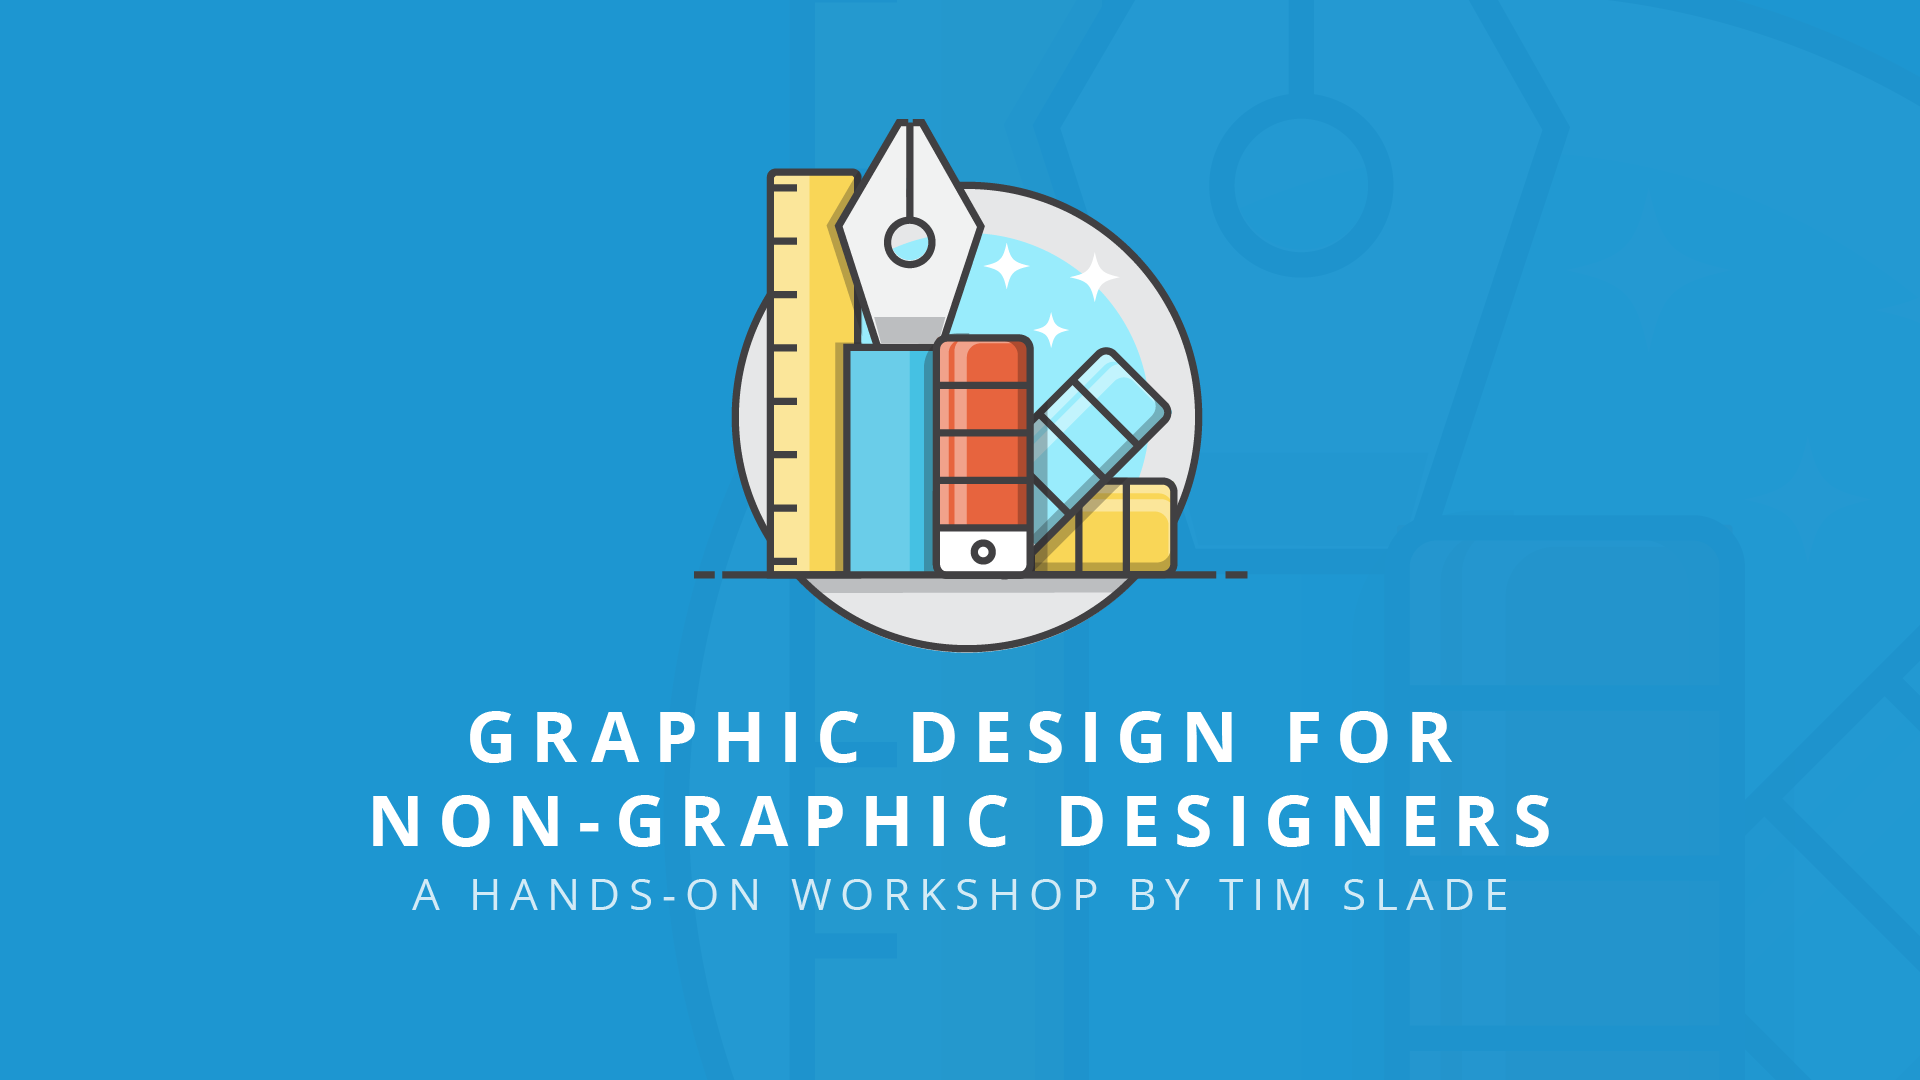 graphic design for non-graphic designers - eLearning Workshops by Tim Slade